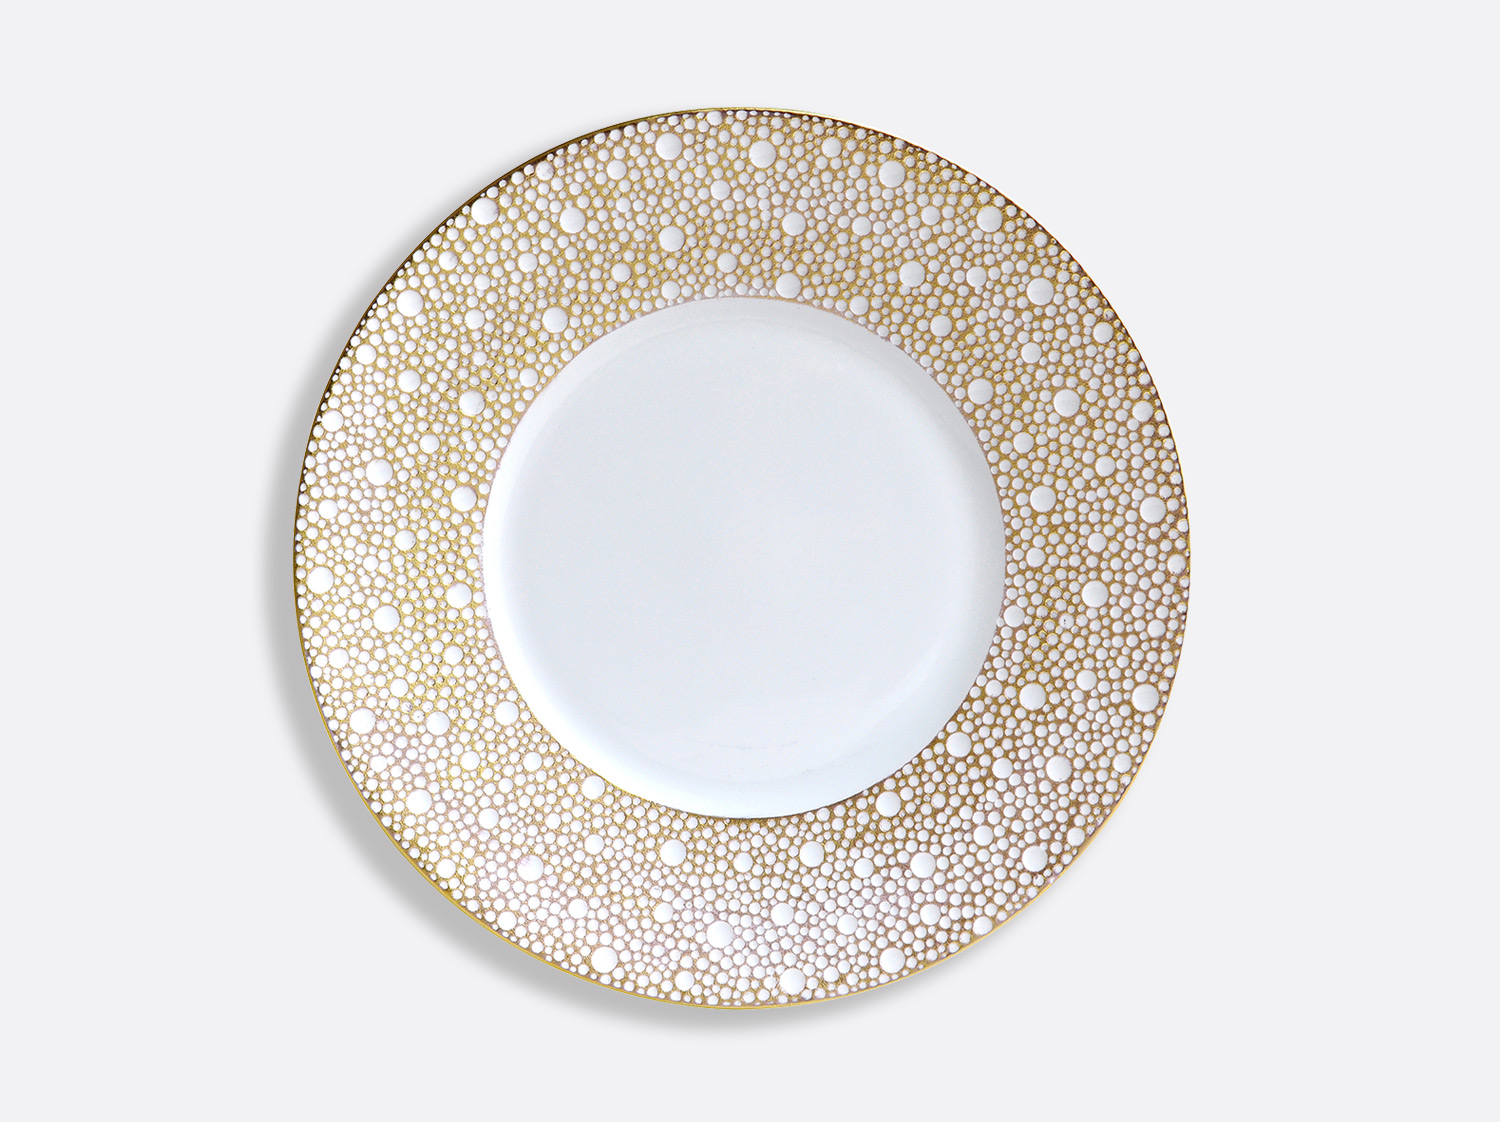 China Plate 21 cm of the collection Ecume Mordoré | Bernardaud